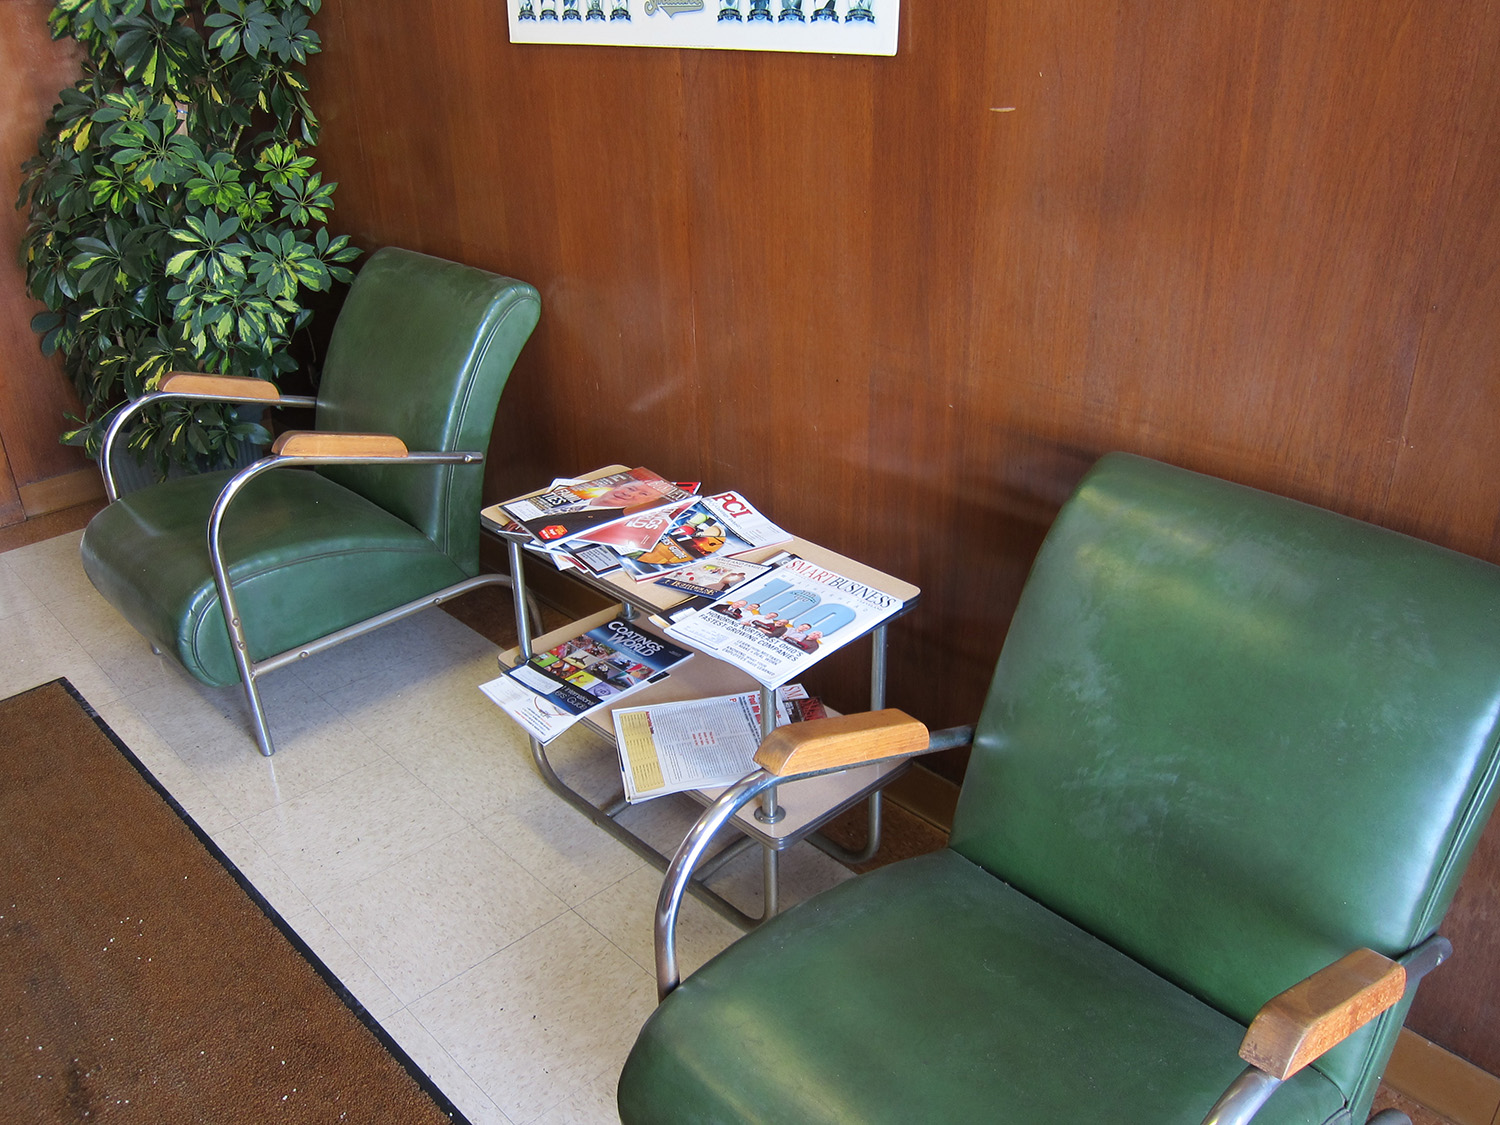 Waiting room (mid-century) furniture